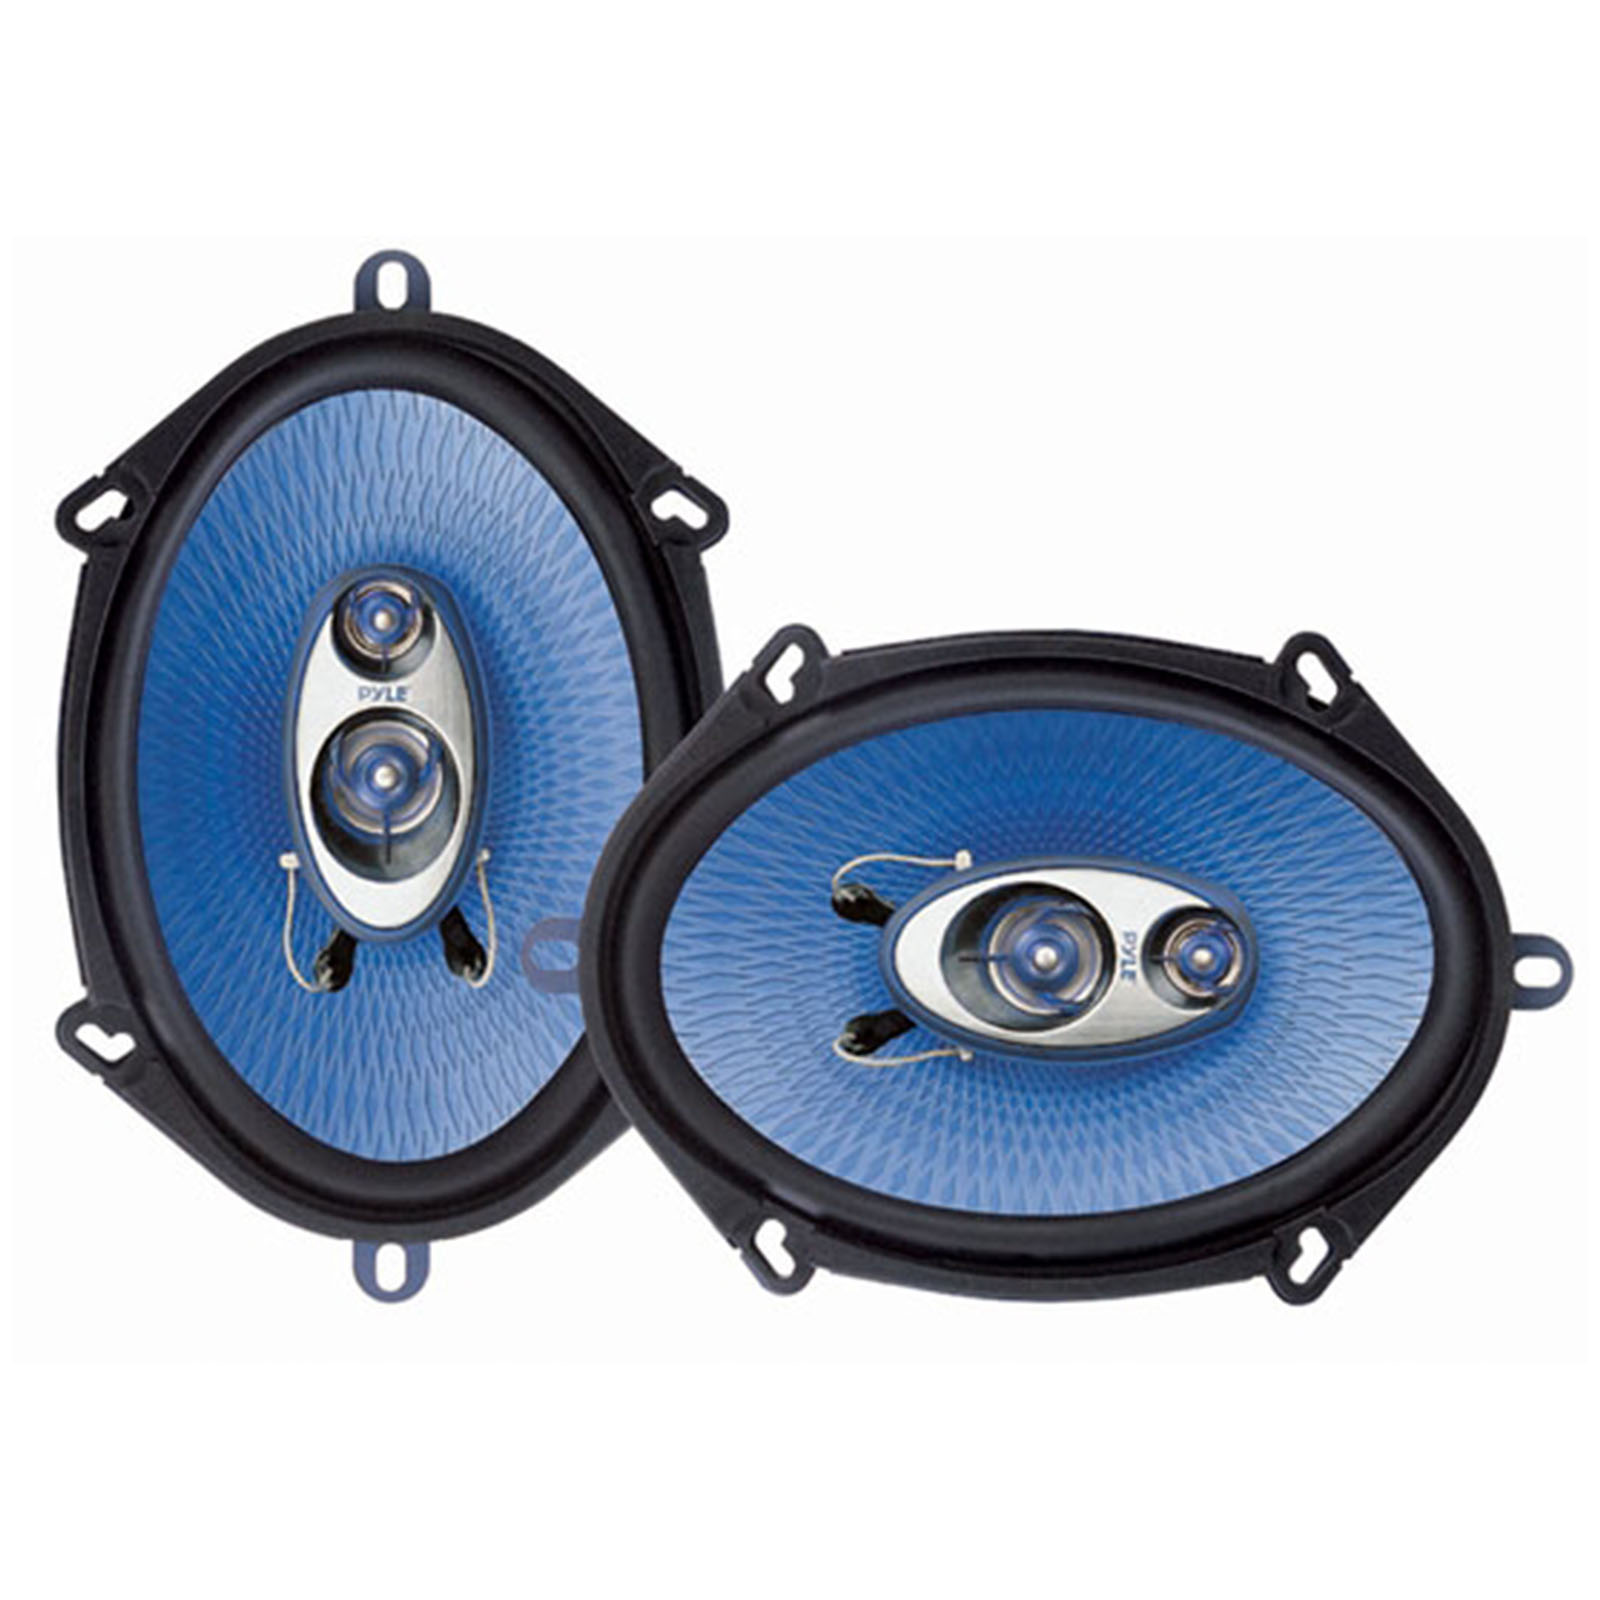 """PYLE PL573BL - 5"""" x 7"""" Car Sound Speaker (Pair) - Upgraded Blue Poly Injection Cone 3-Way 300 Watts w/Non-fatiguing Butyl Rubber Surround 80-20Khz Frequency Response 4 Ohm & 1"""" ASV Voice Coil"""